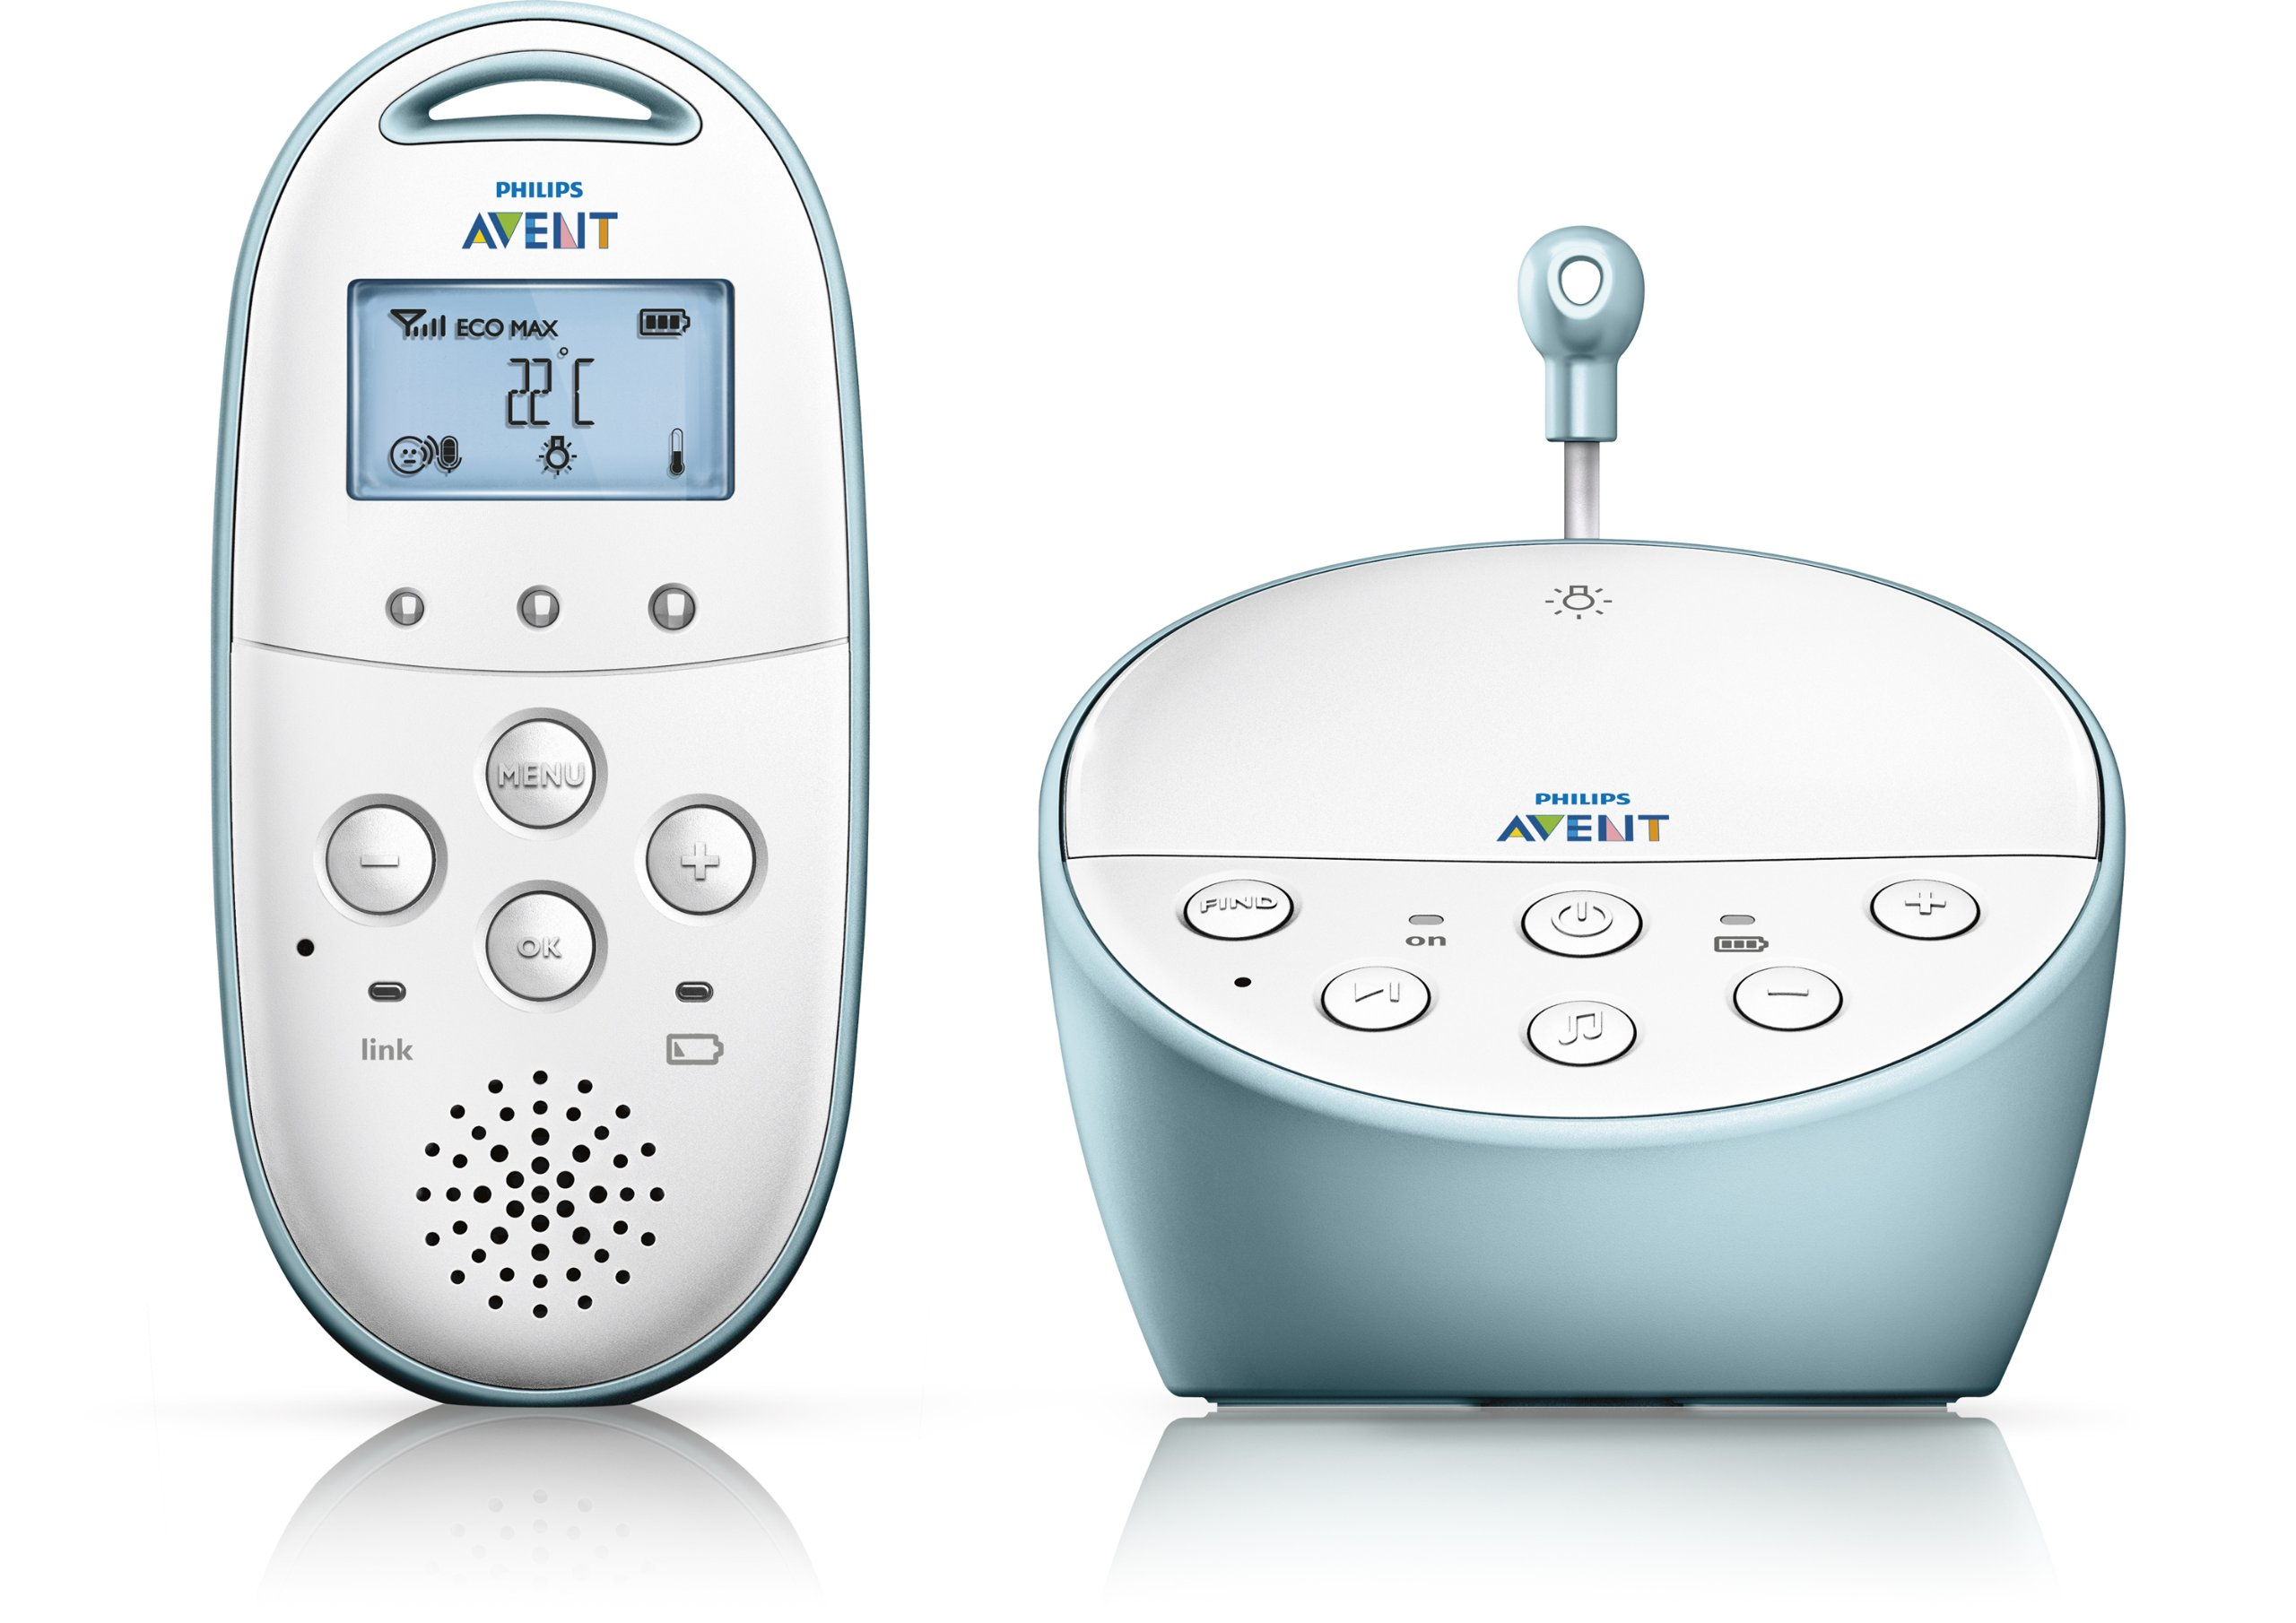 Philips Avent DECT Baby Monitor with Temperature Sensor